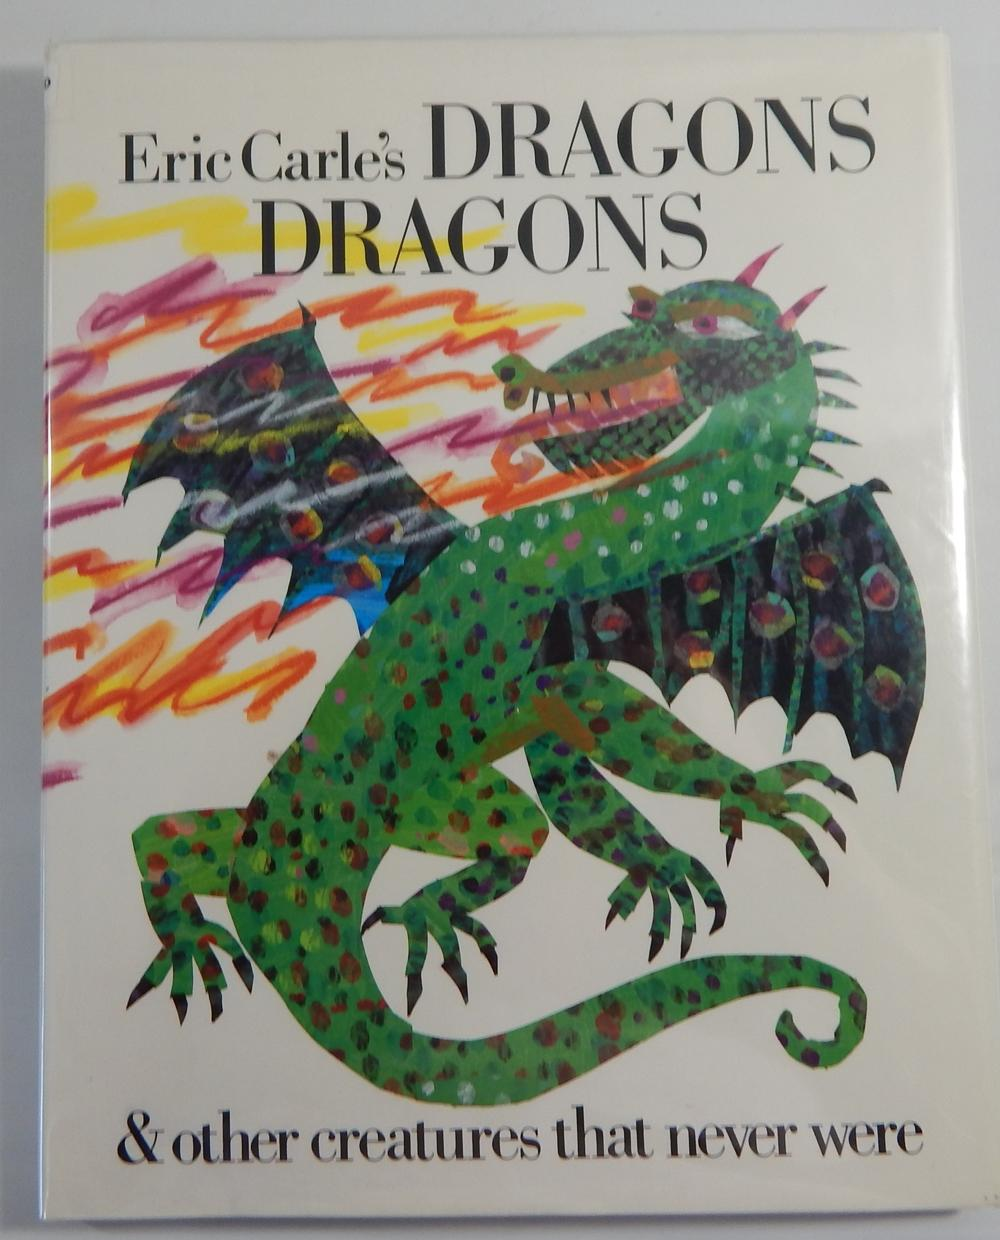 Eric Carle's Dragons & other creatures that never were, - Carle, Eric; Laura Whipple, compiler